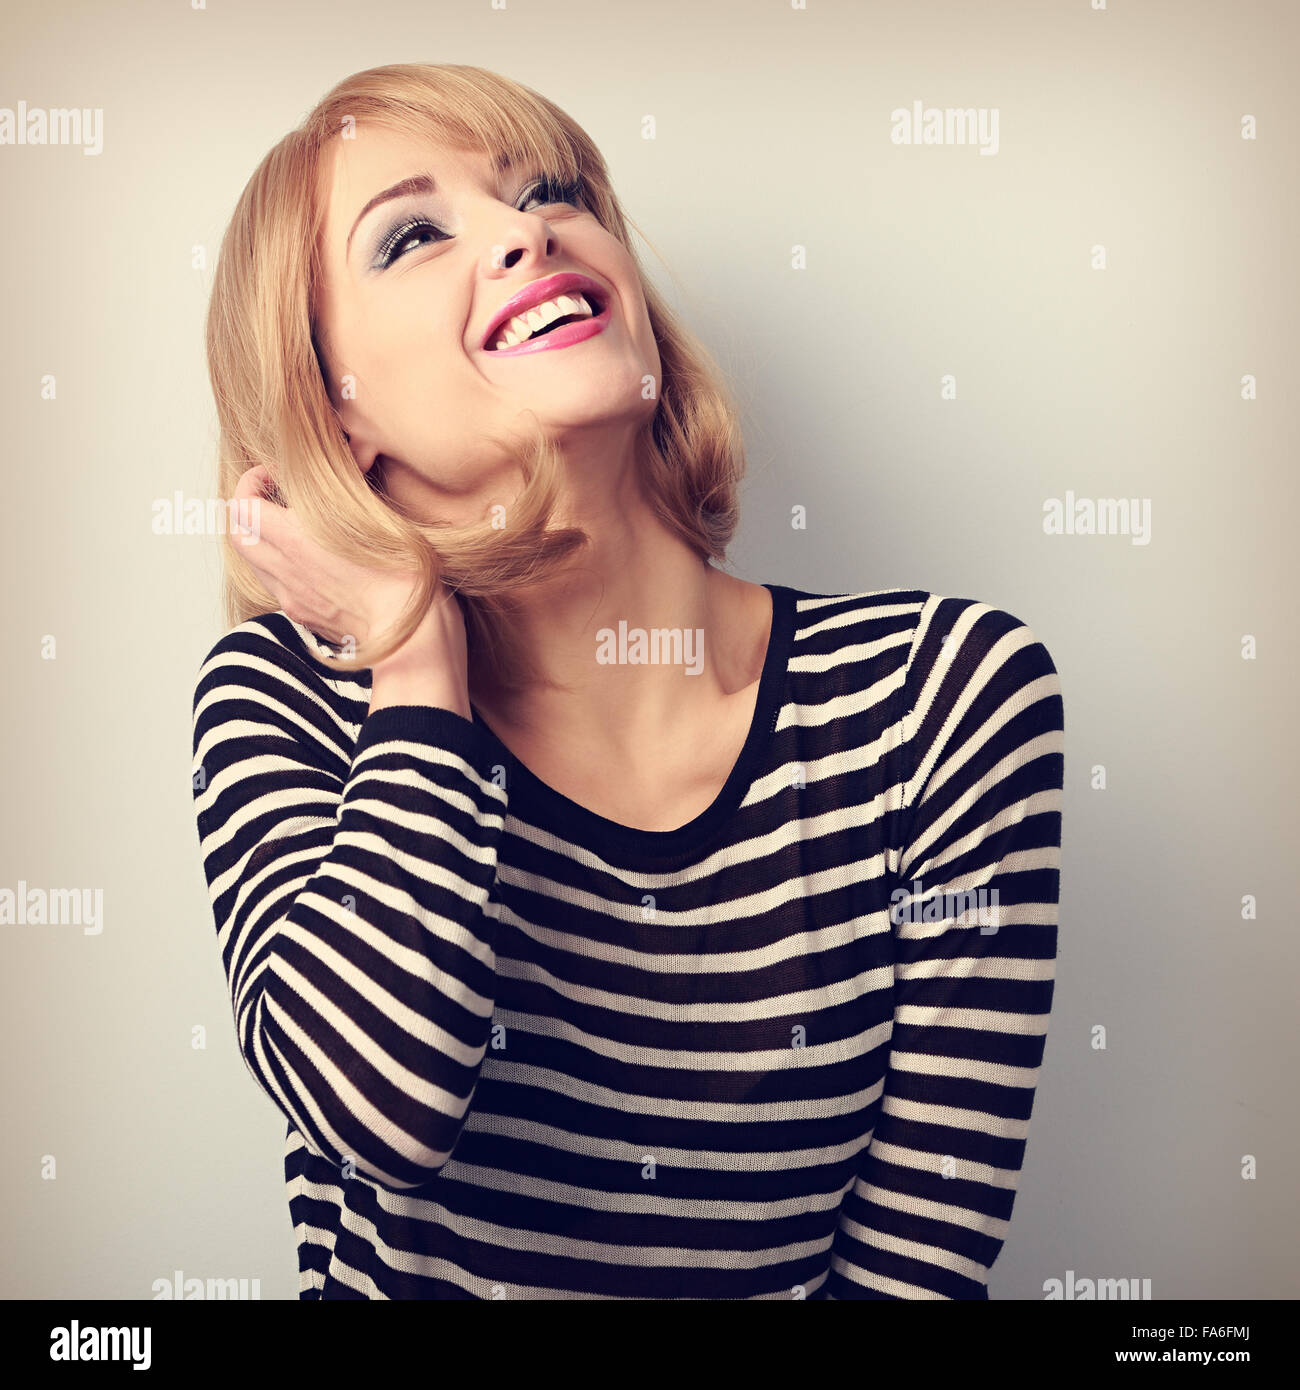 Happy laughing young blond woman looking up. Vintage closeup portrait - Stock Image